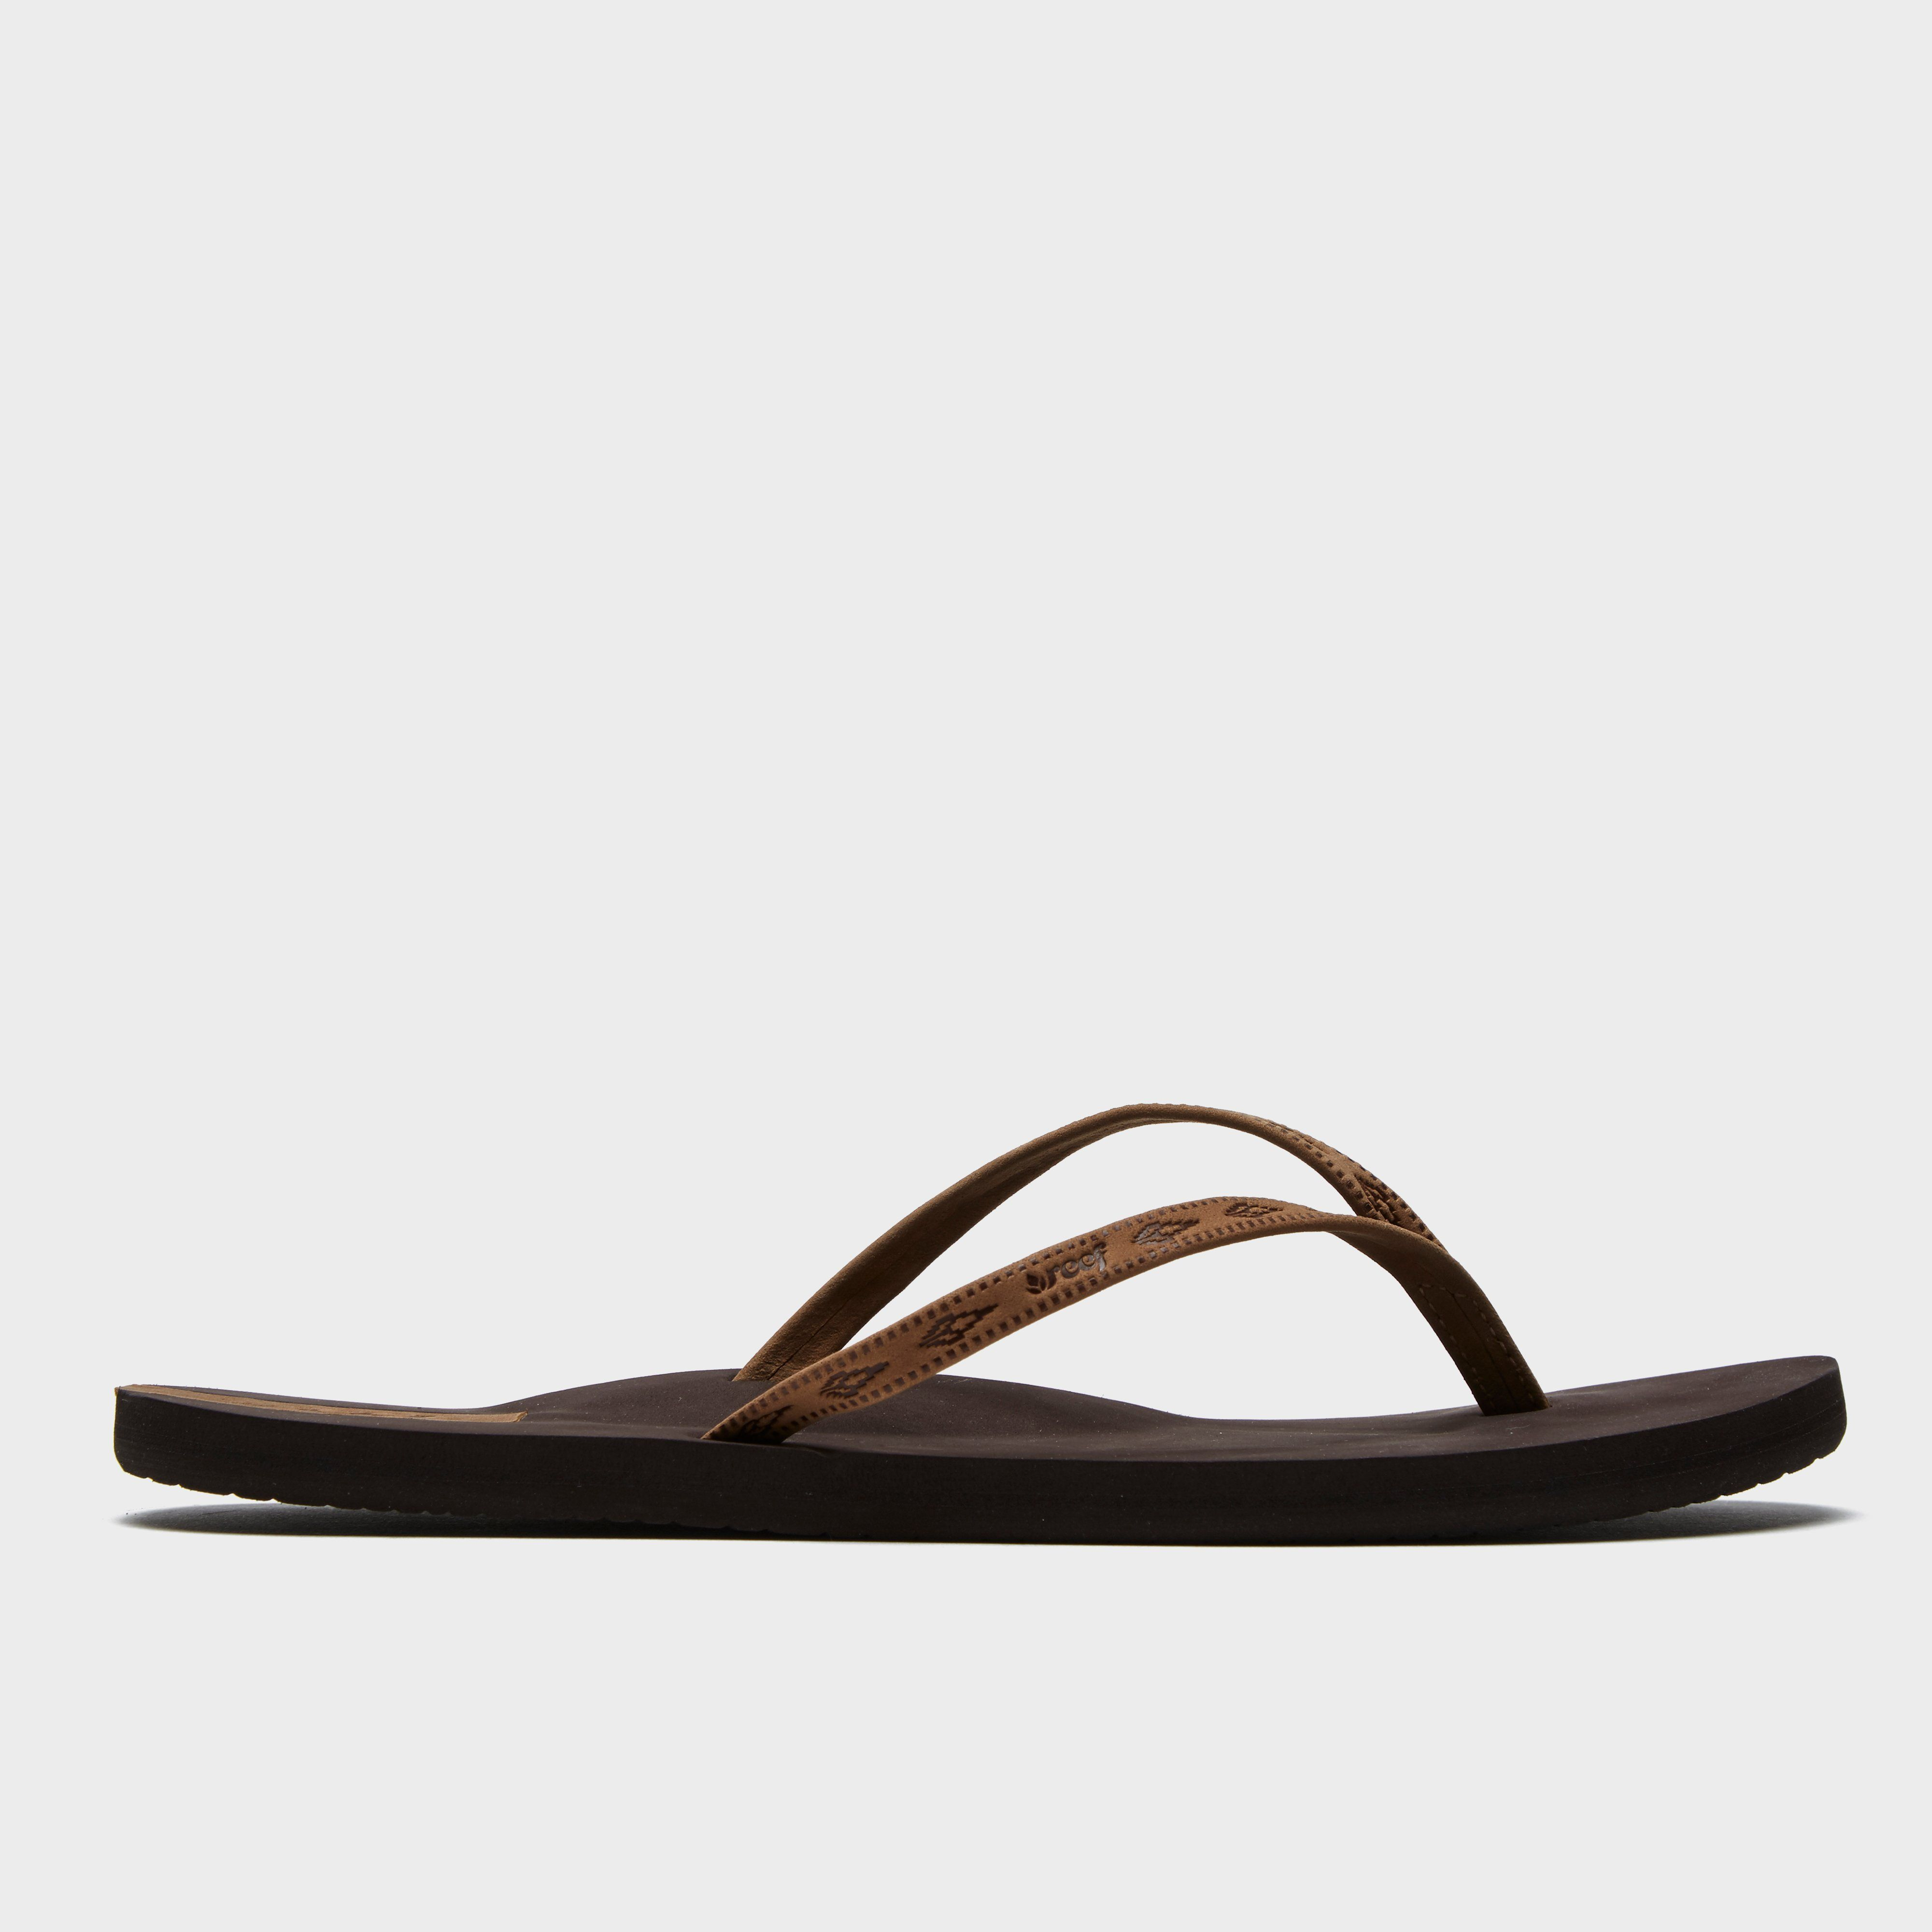 REEF Women's Slim Ginger Leather Flip Flops